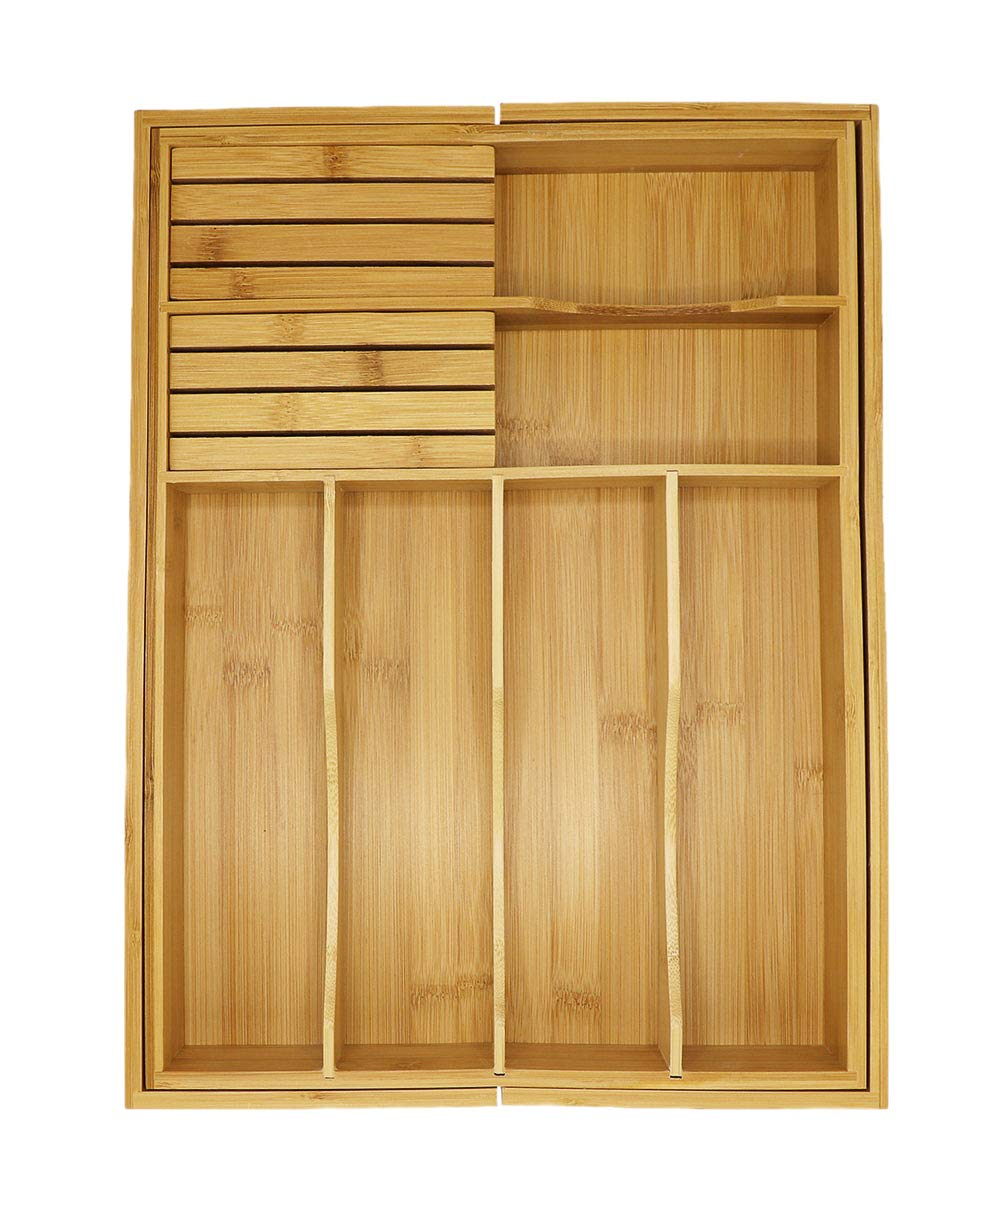 Adjustable Expandable Kitchen Utensil Drawer Organizer and Storage Tray by Bamboo Cottage 100% Bamboo Ergonomic silverware dividers, removable cutlery knife blocks, non slip for kitchen and office. by Bamboo Cottage (Image #2)